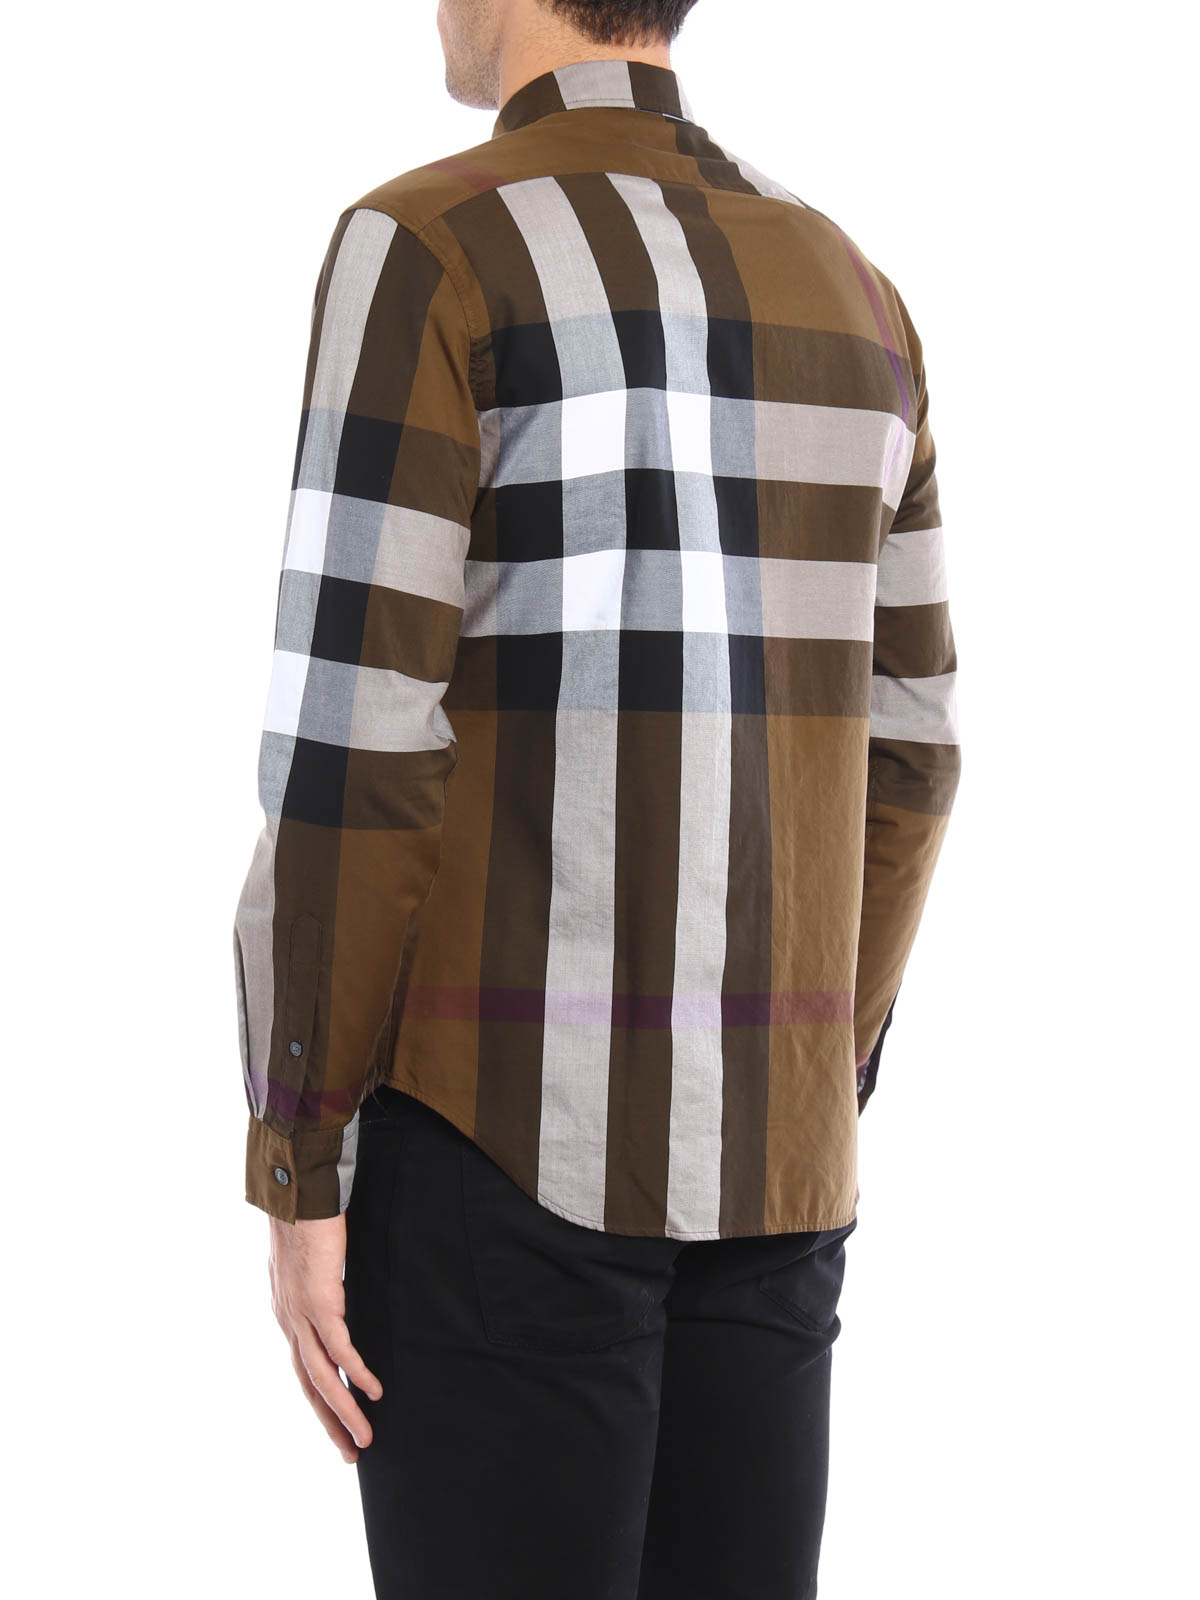 Burberry - Chemise Fred Pour Homme - Chemises - 4023504   iKRIX.com 8a93079f613